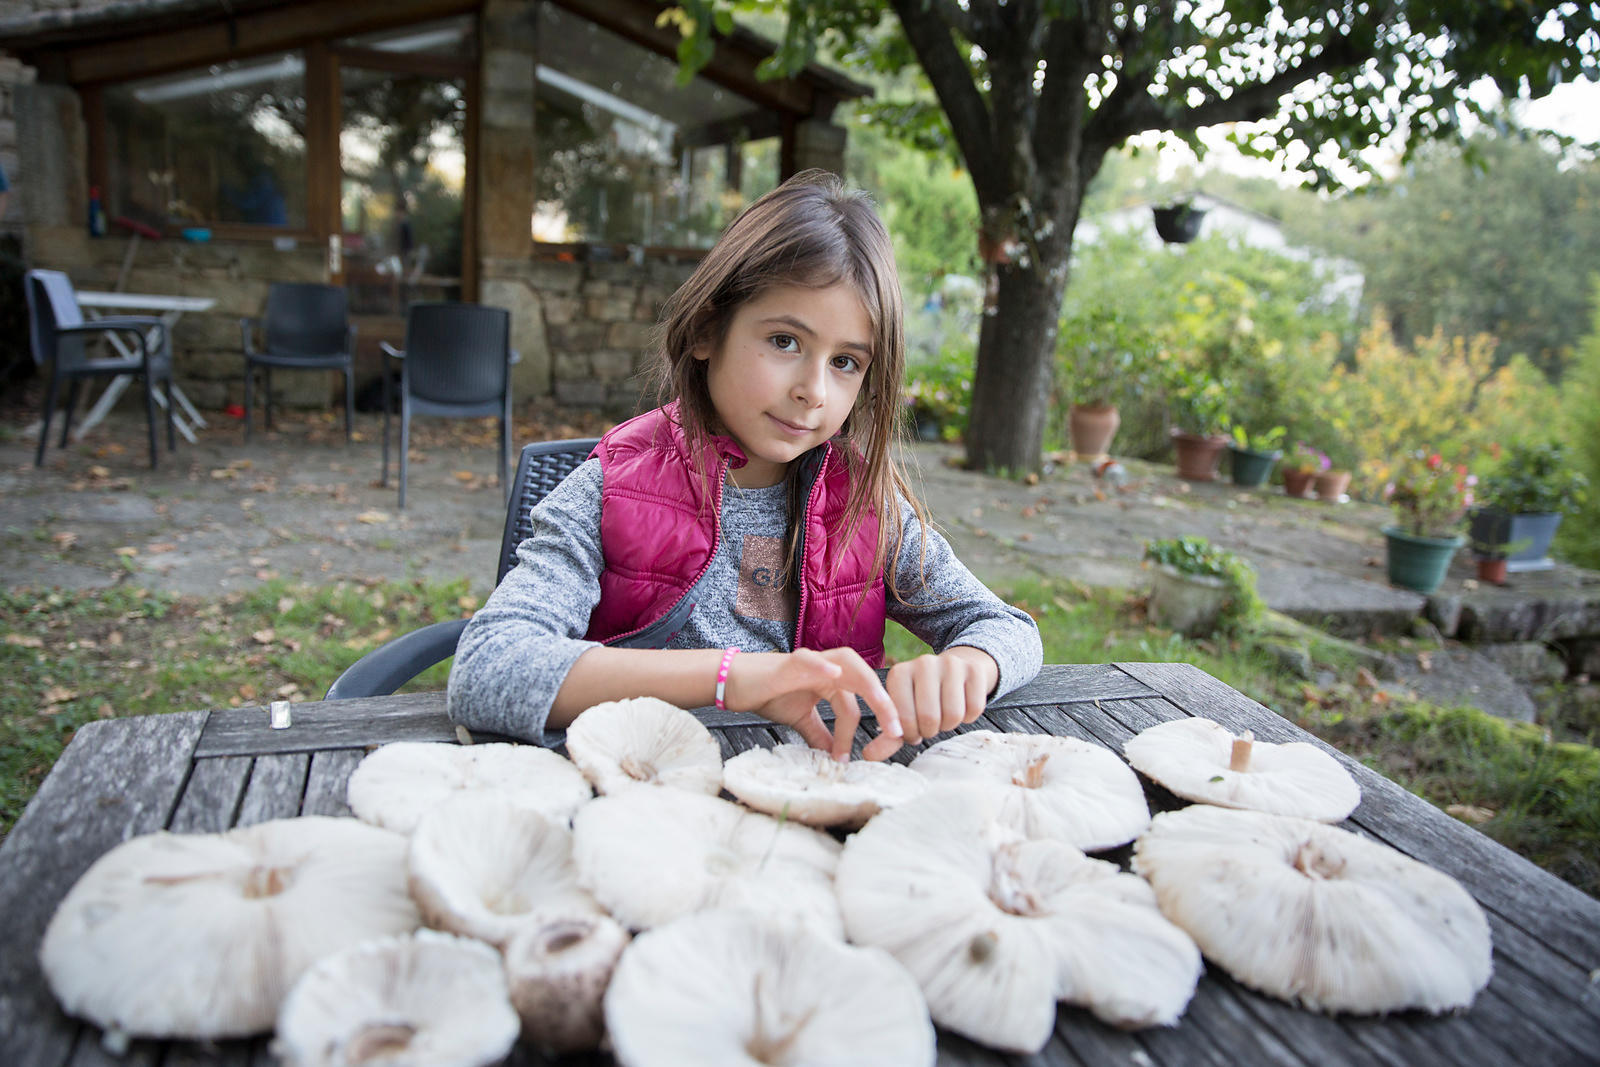 Rose, 7 ans et la cueillette de coulemelles,  Les Assions, Ardèche, France / Rose, 7 years old and the parasol mushrooms, Les Assions, Ardèche, France